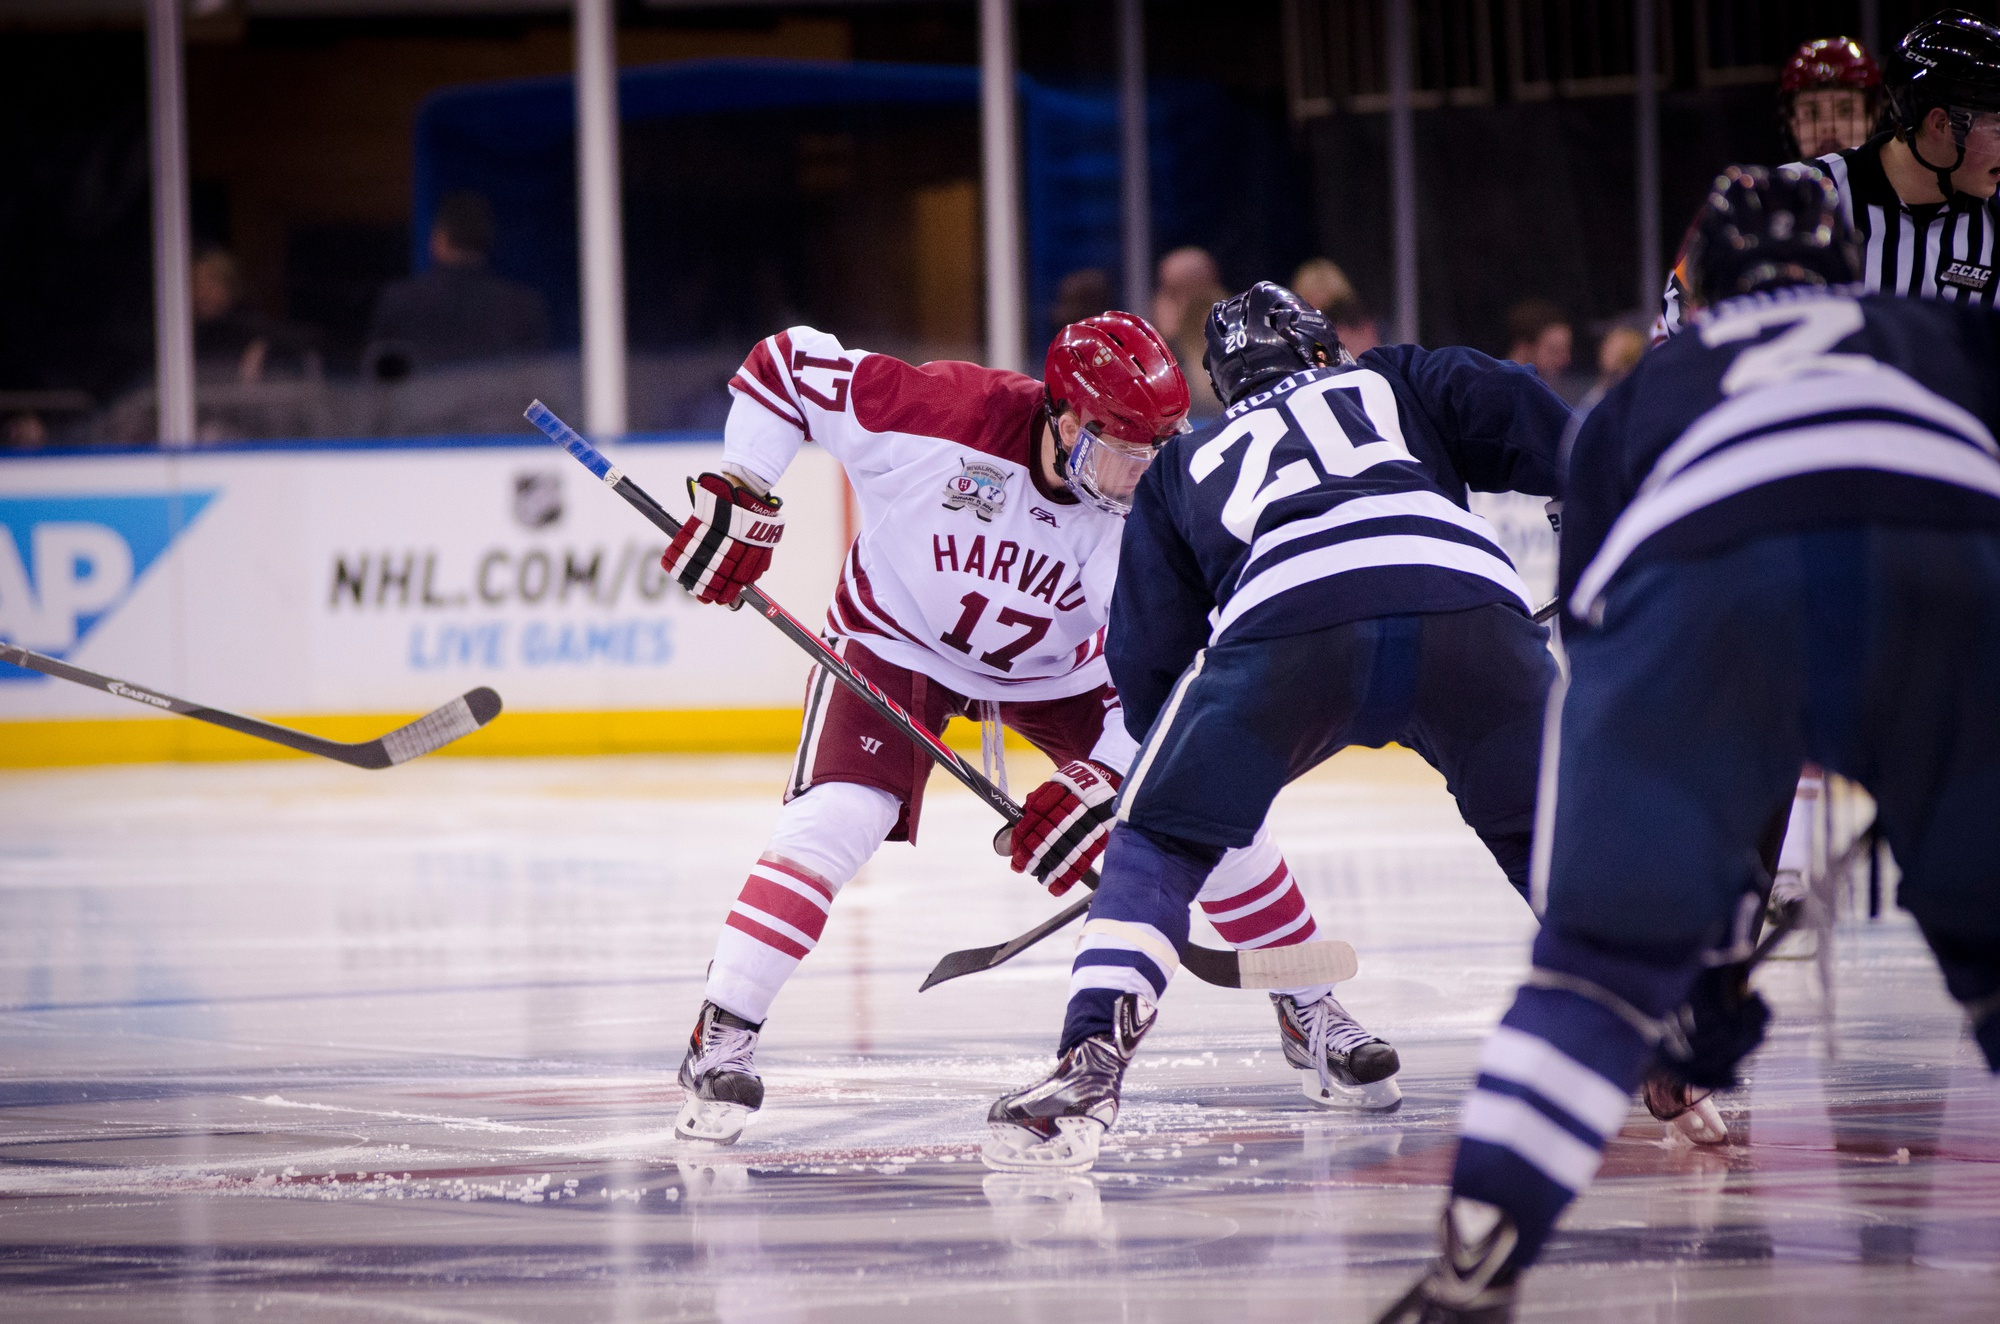 With the delay of the Beanpot due to winter weather, Harvard can hope the extra time will let injured players like sophomore Sean Malone rest in preparation for this week's competition.